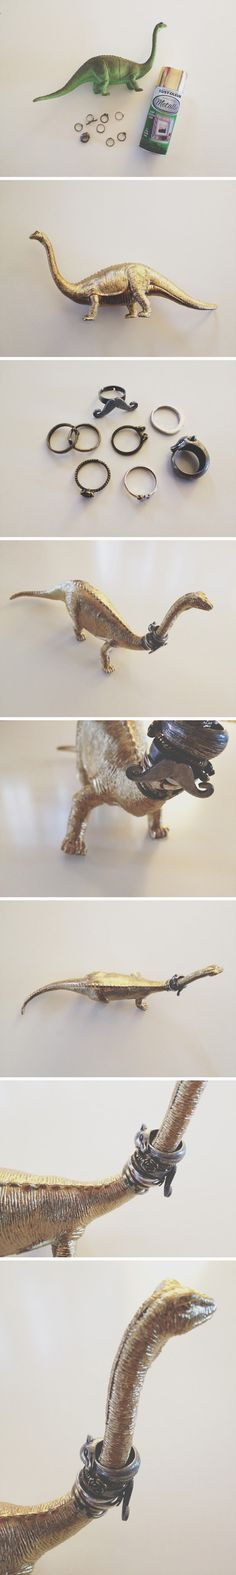 DIY Dino Ring Holder by walkinlove